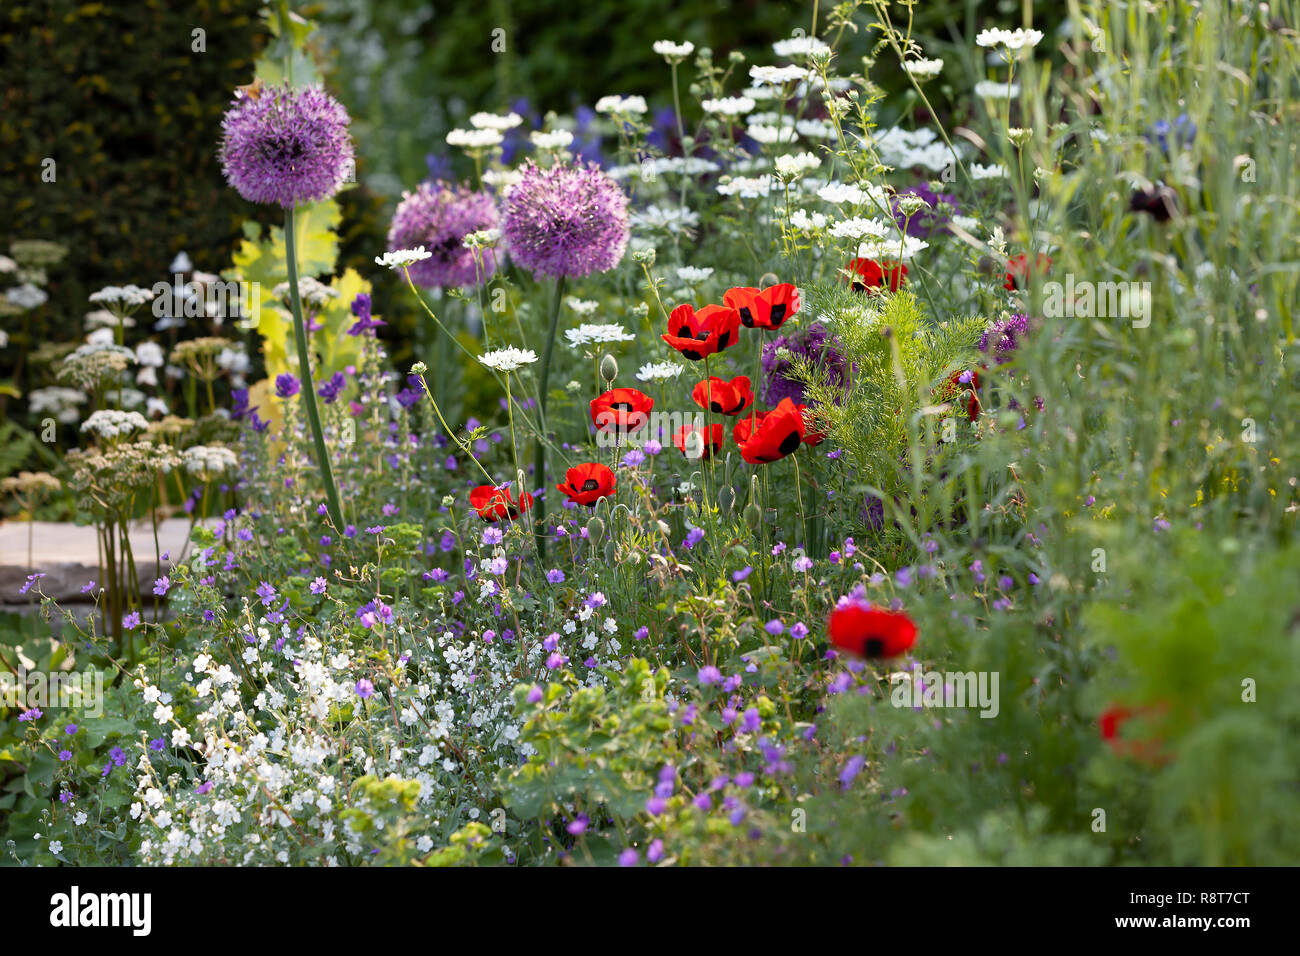 Wild Spring Flowers Growing In The Garden Poppy And Stock Photo